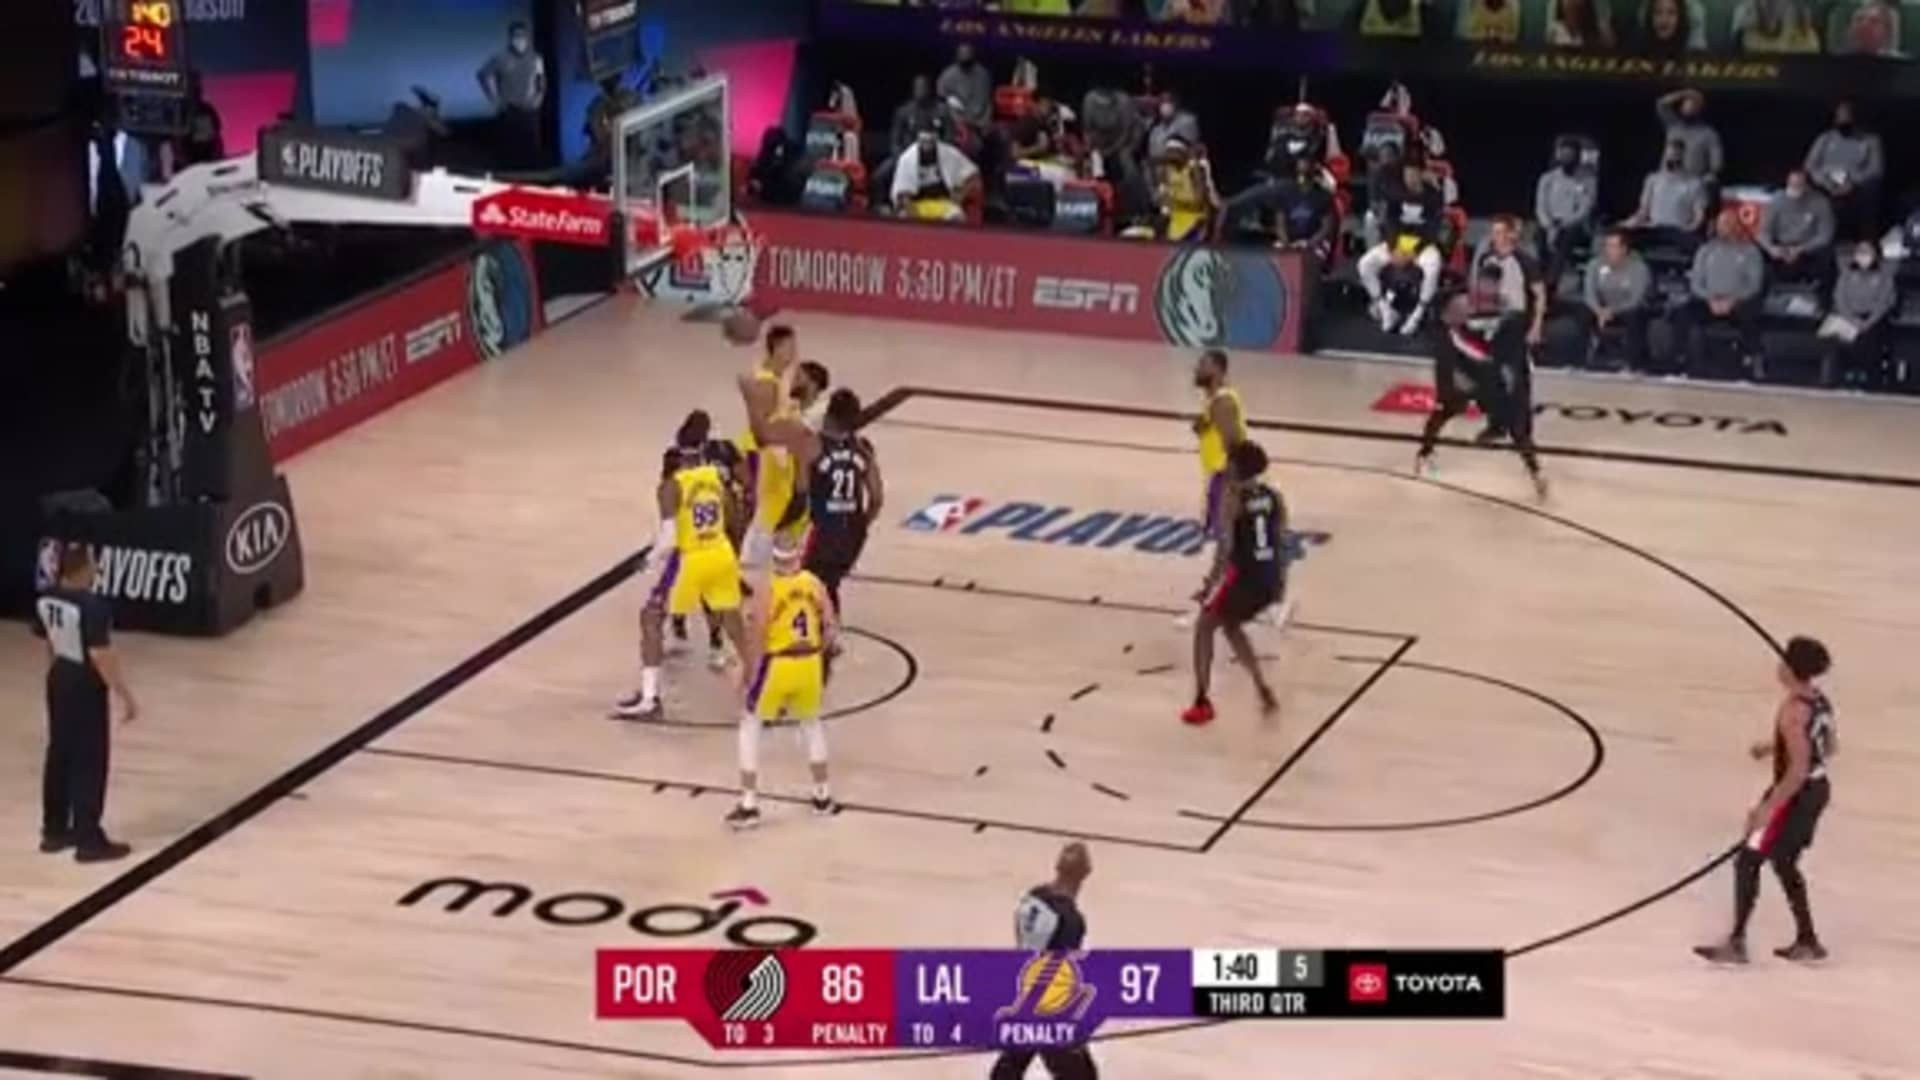 CJ McCollum (36 PTS, 7 AST, 6 REB) Game 5 Highlights vs. Lakers